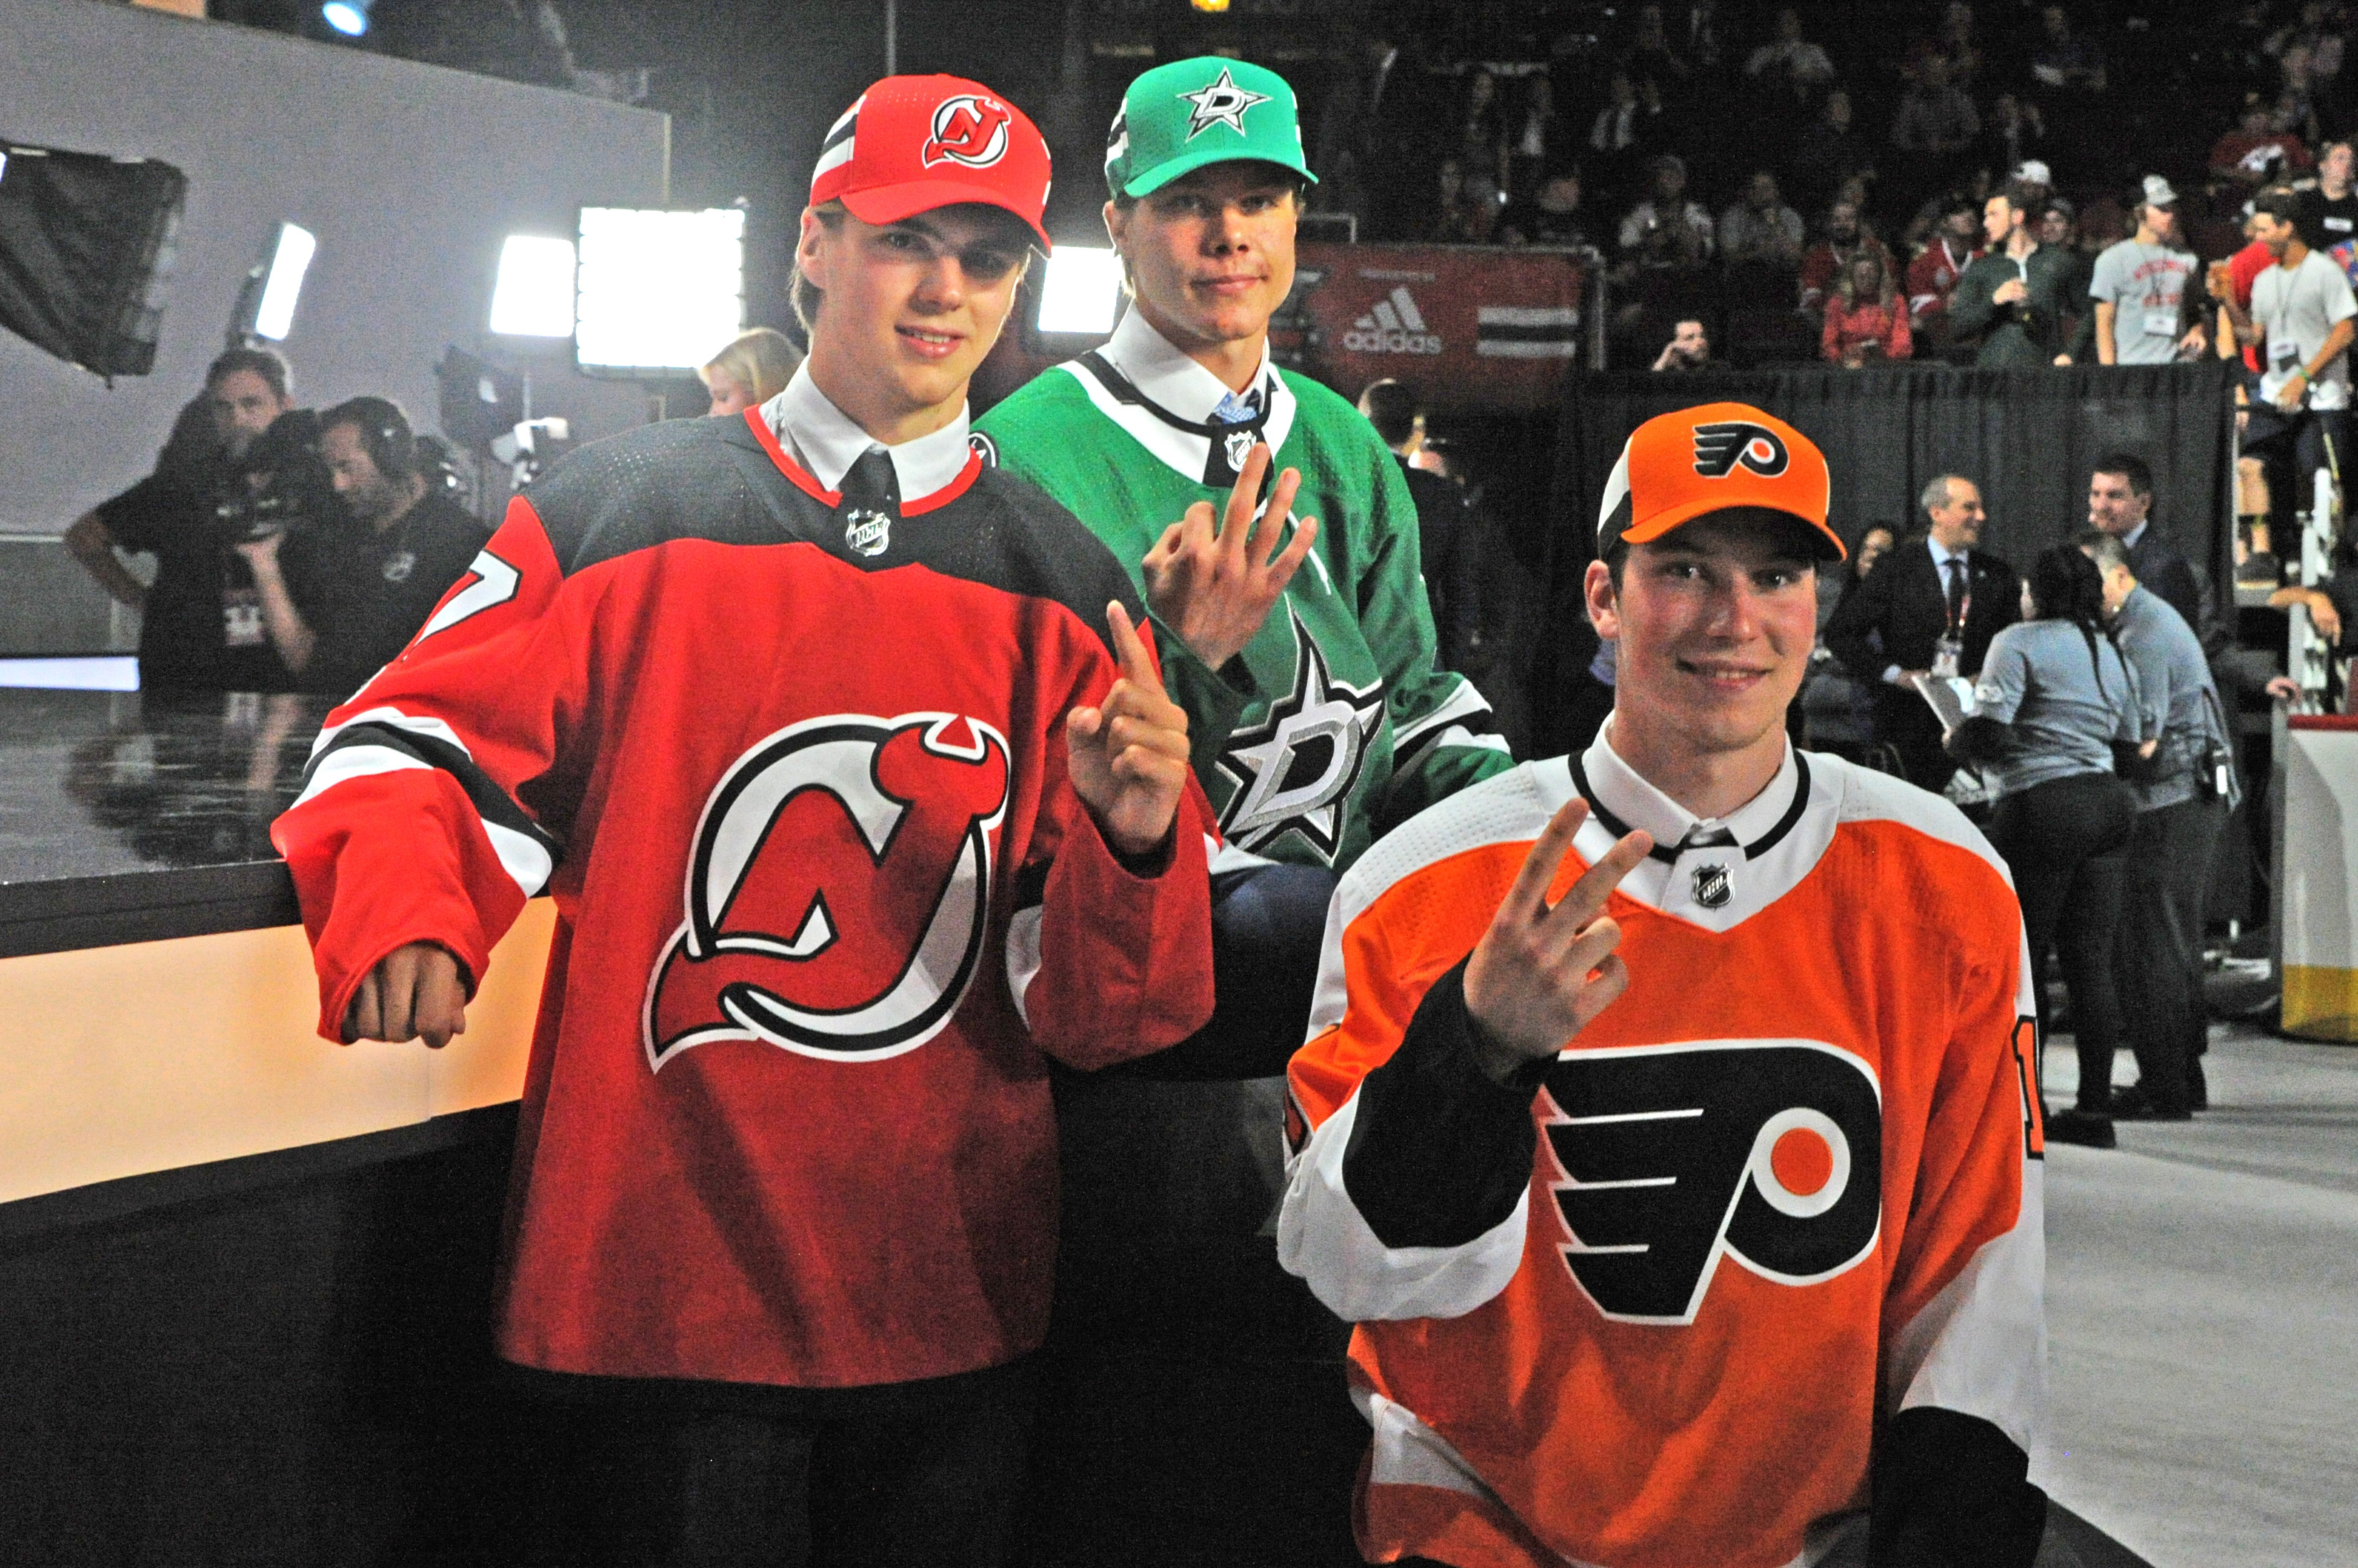 New Jersey Devils center Nico Hischier (left), Flyers center Nolan Patrick (right), and Dallas Stars defenseman Miro Heiskanen (center) pose after being selected in the first round of the 2017 NHL Draft. Patrick Gorski/Icon Sportswire (Icon Sportswire via AP Images)